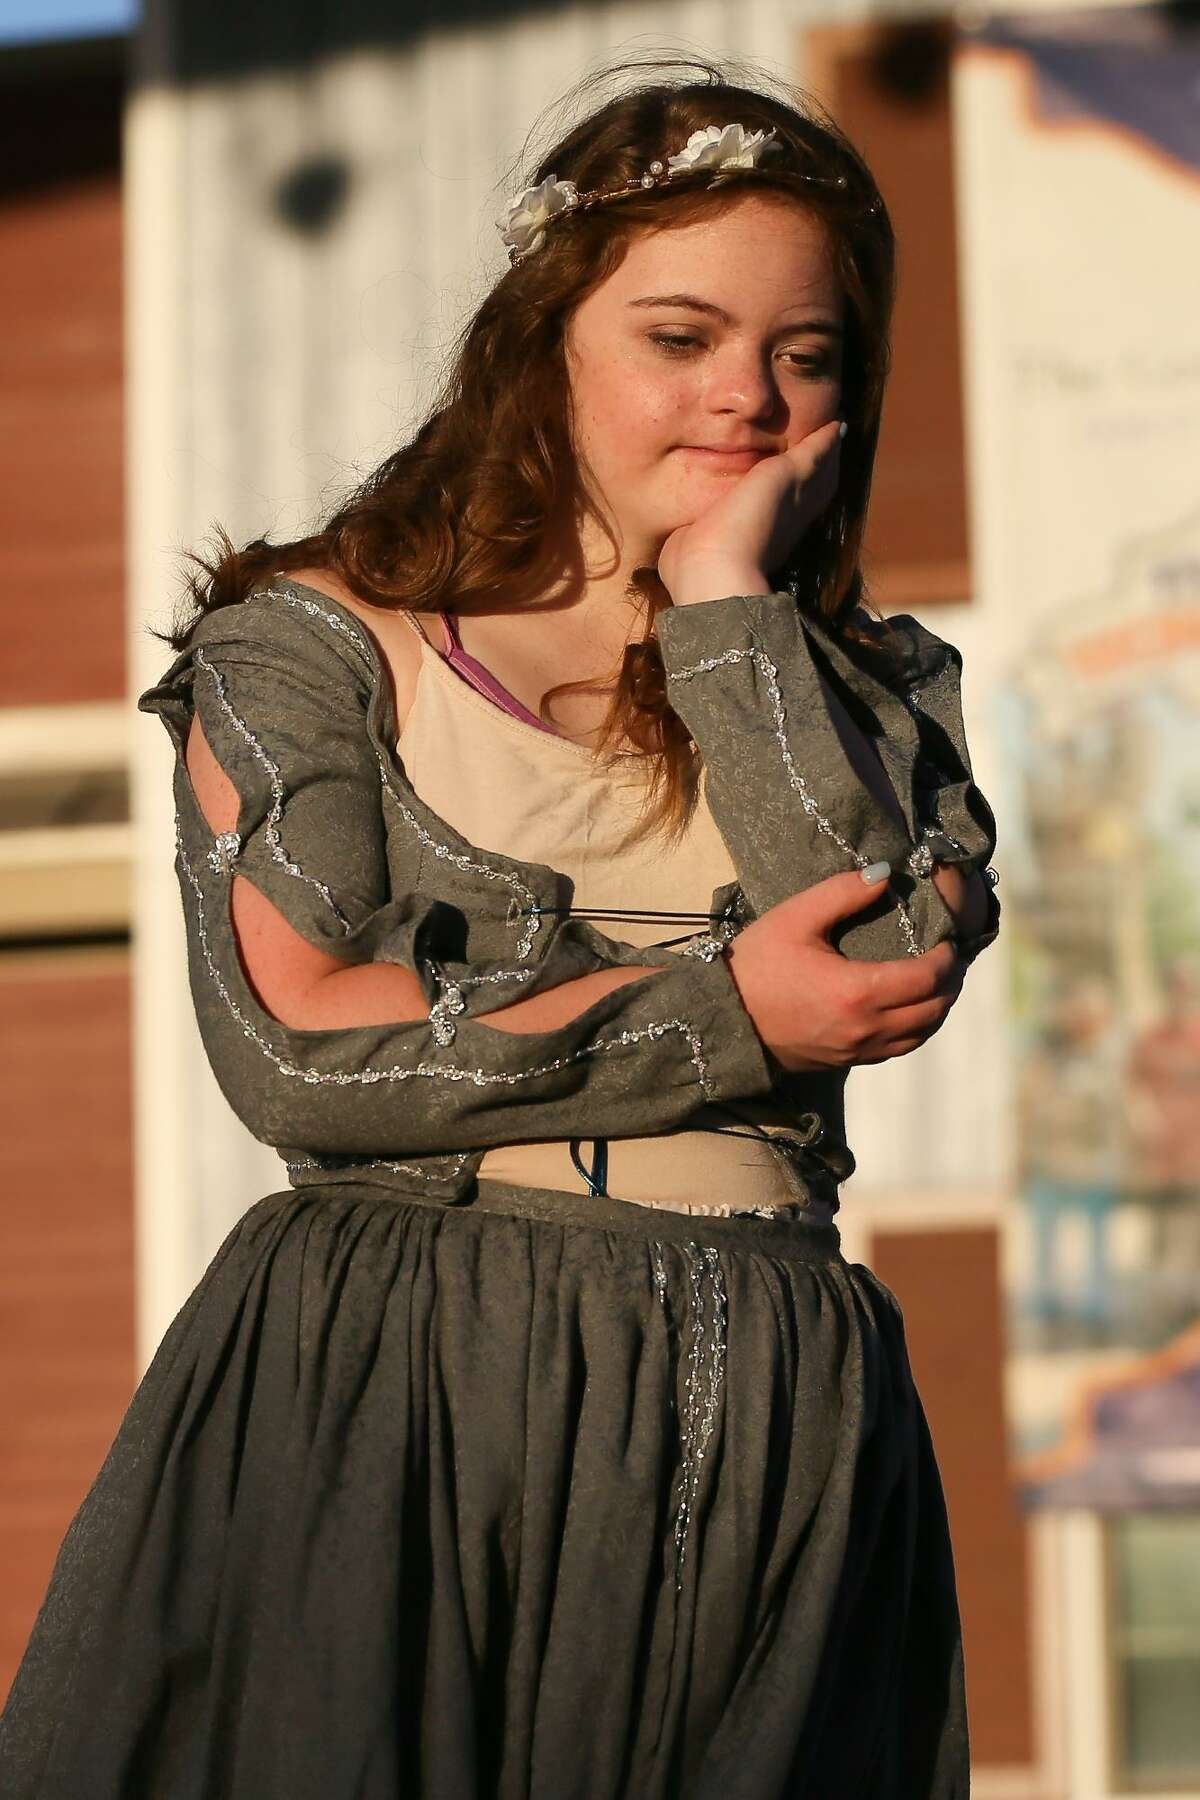 """Leah Meyer, 18, takes part in a dress rehearsal for """"Scenes, Sonnets and Soliloquies: Vol 1,"""" which includes snippets from several of Shakespeare's plays. Meyer plays Juliet in the balcony scene from """"Romeo and Juliet."""""""